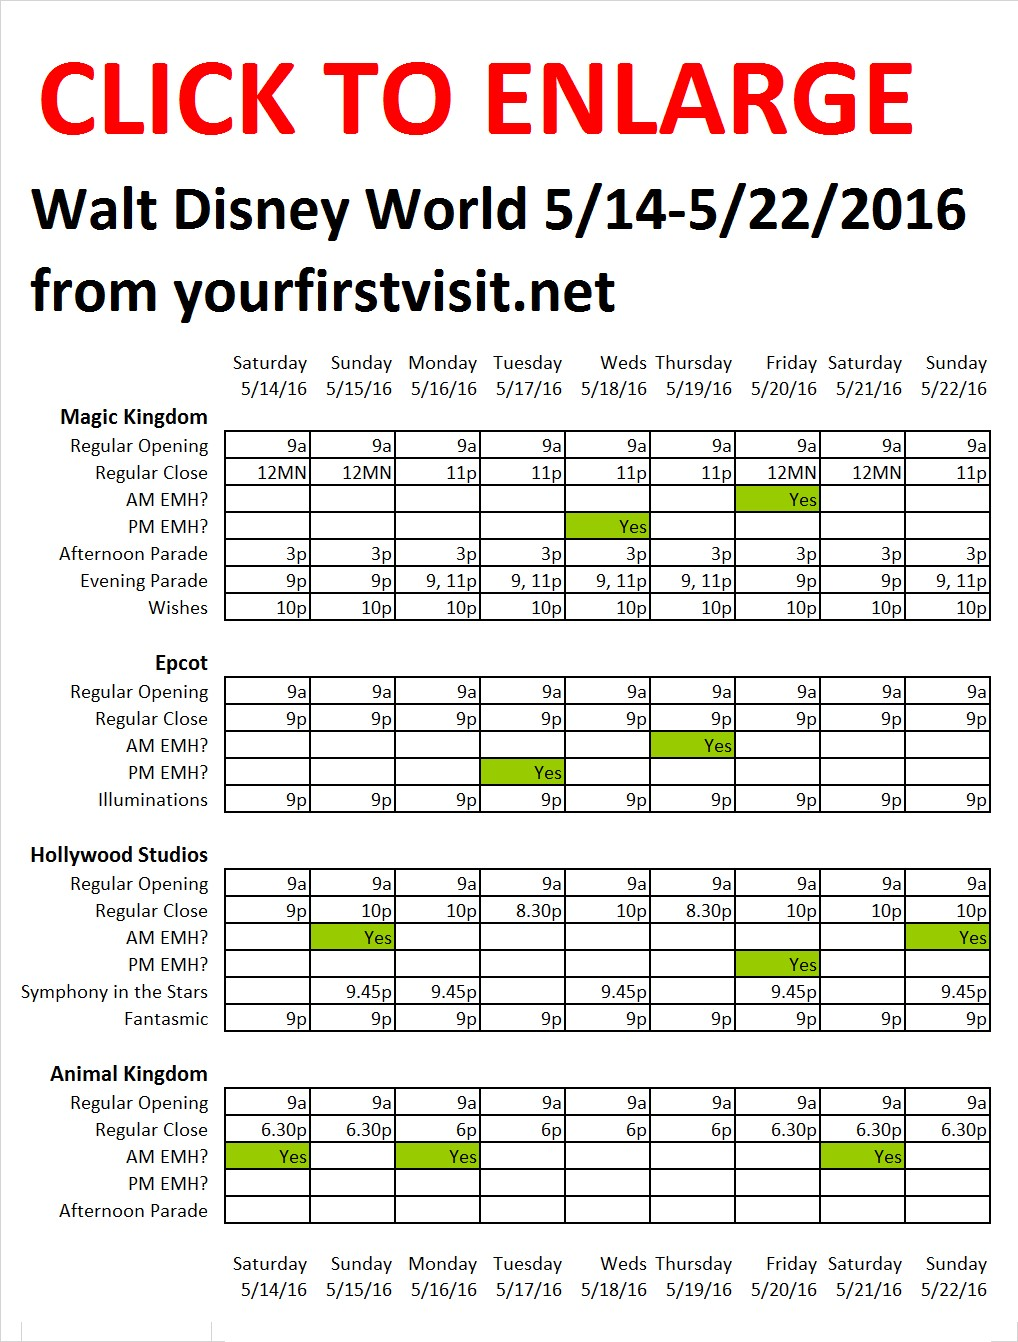 Disney World 5-14 to 5-22-2016 from yourfirstvisit.net